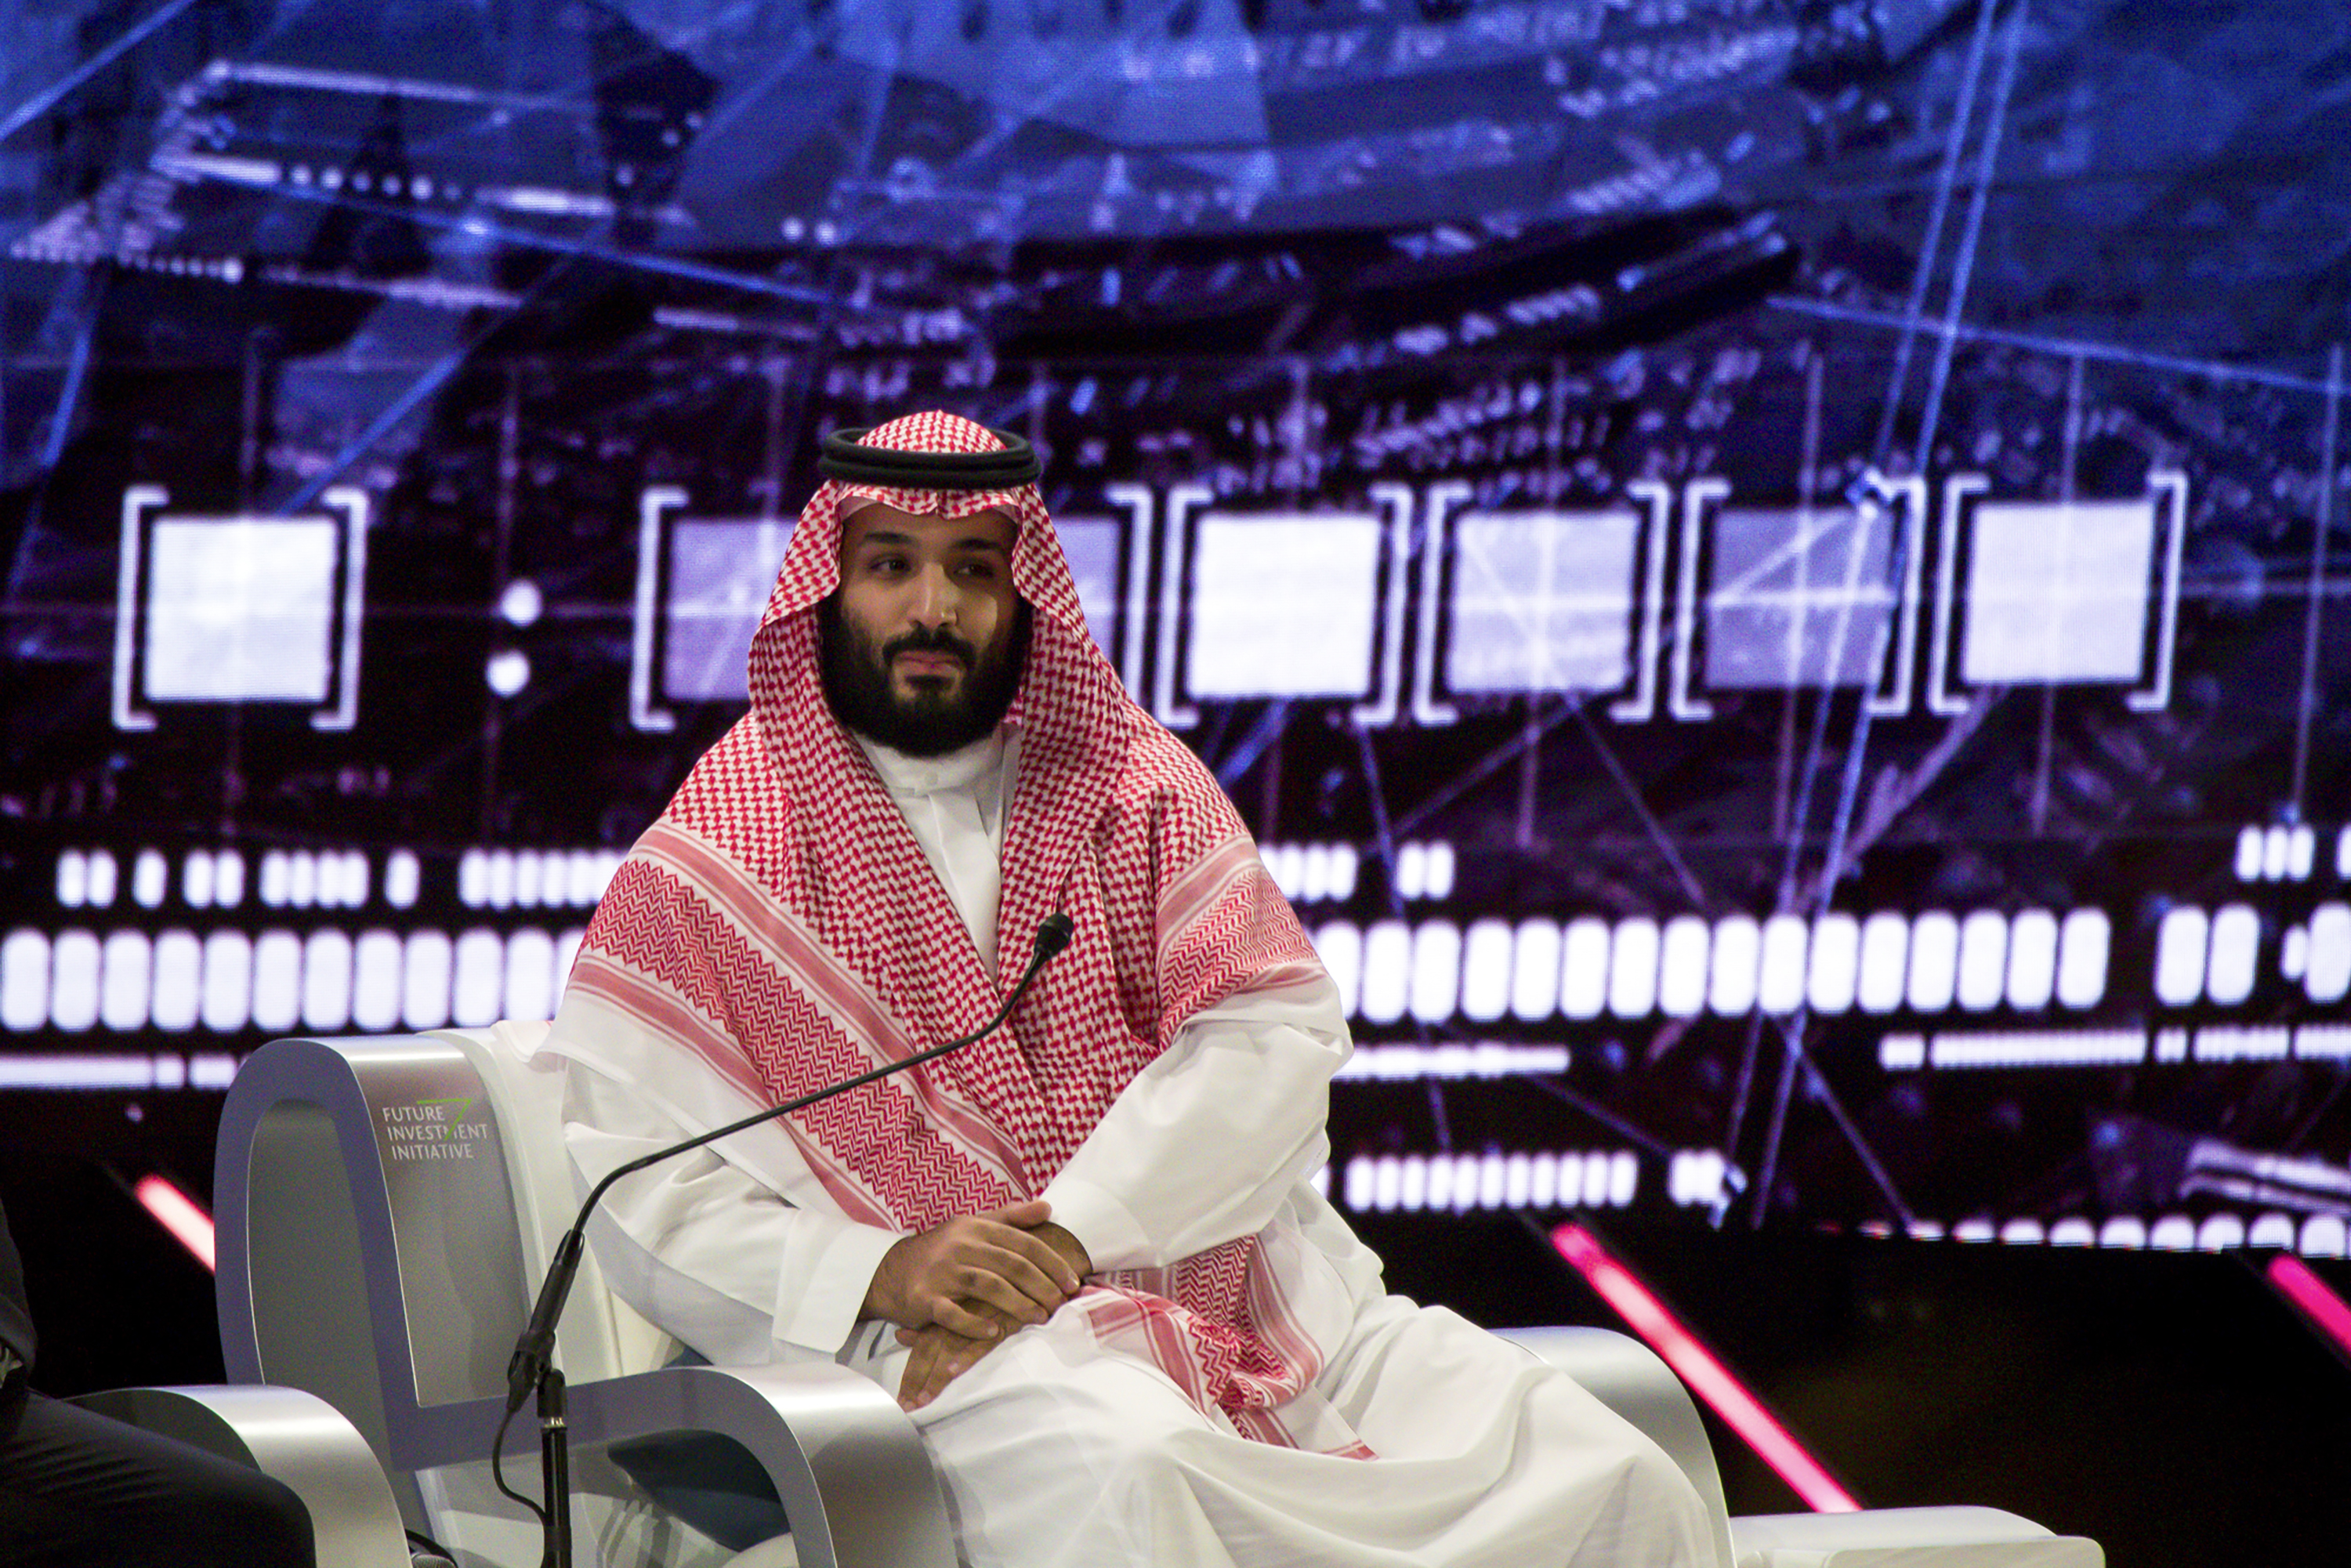 Crown Prince Mohammed bin Salman speaks at an investor conference in Riyadh on October 24, 2018.